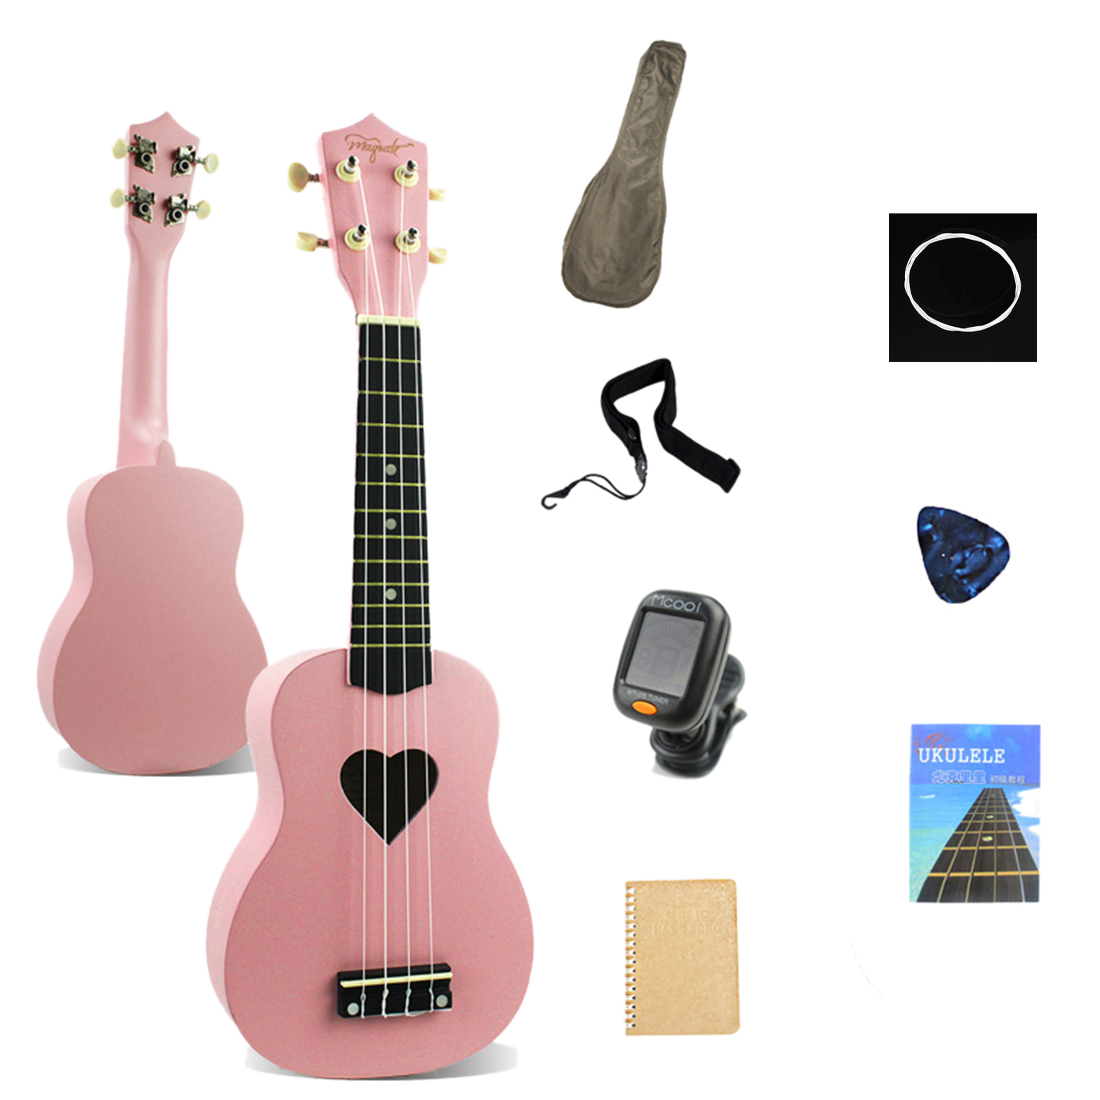 21 Inches Wooden Ukulele 4 Strings Guitar Musical Instruments Kit/With Storage Case For Children Kids Christmas Gift- Pink Heart